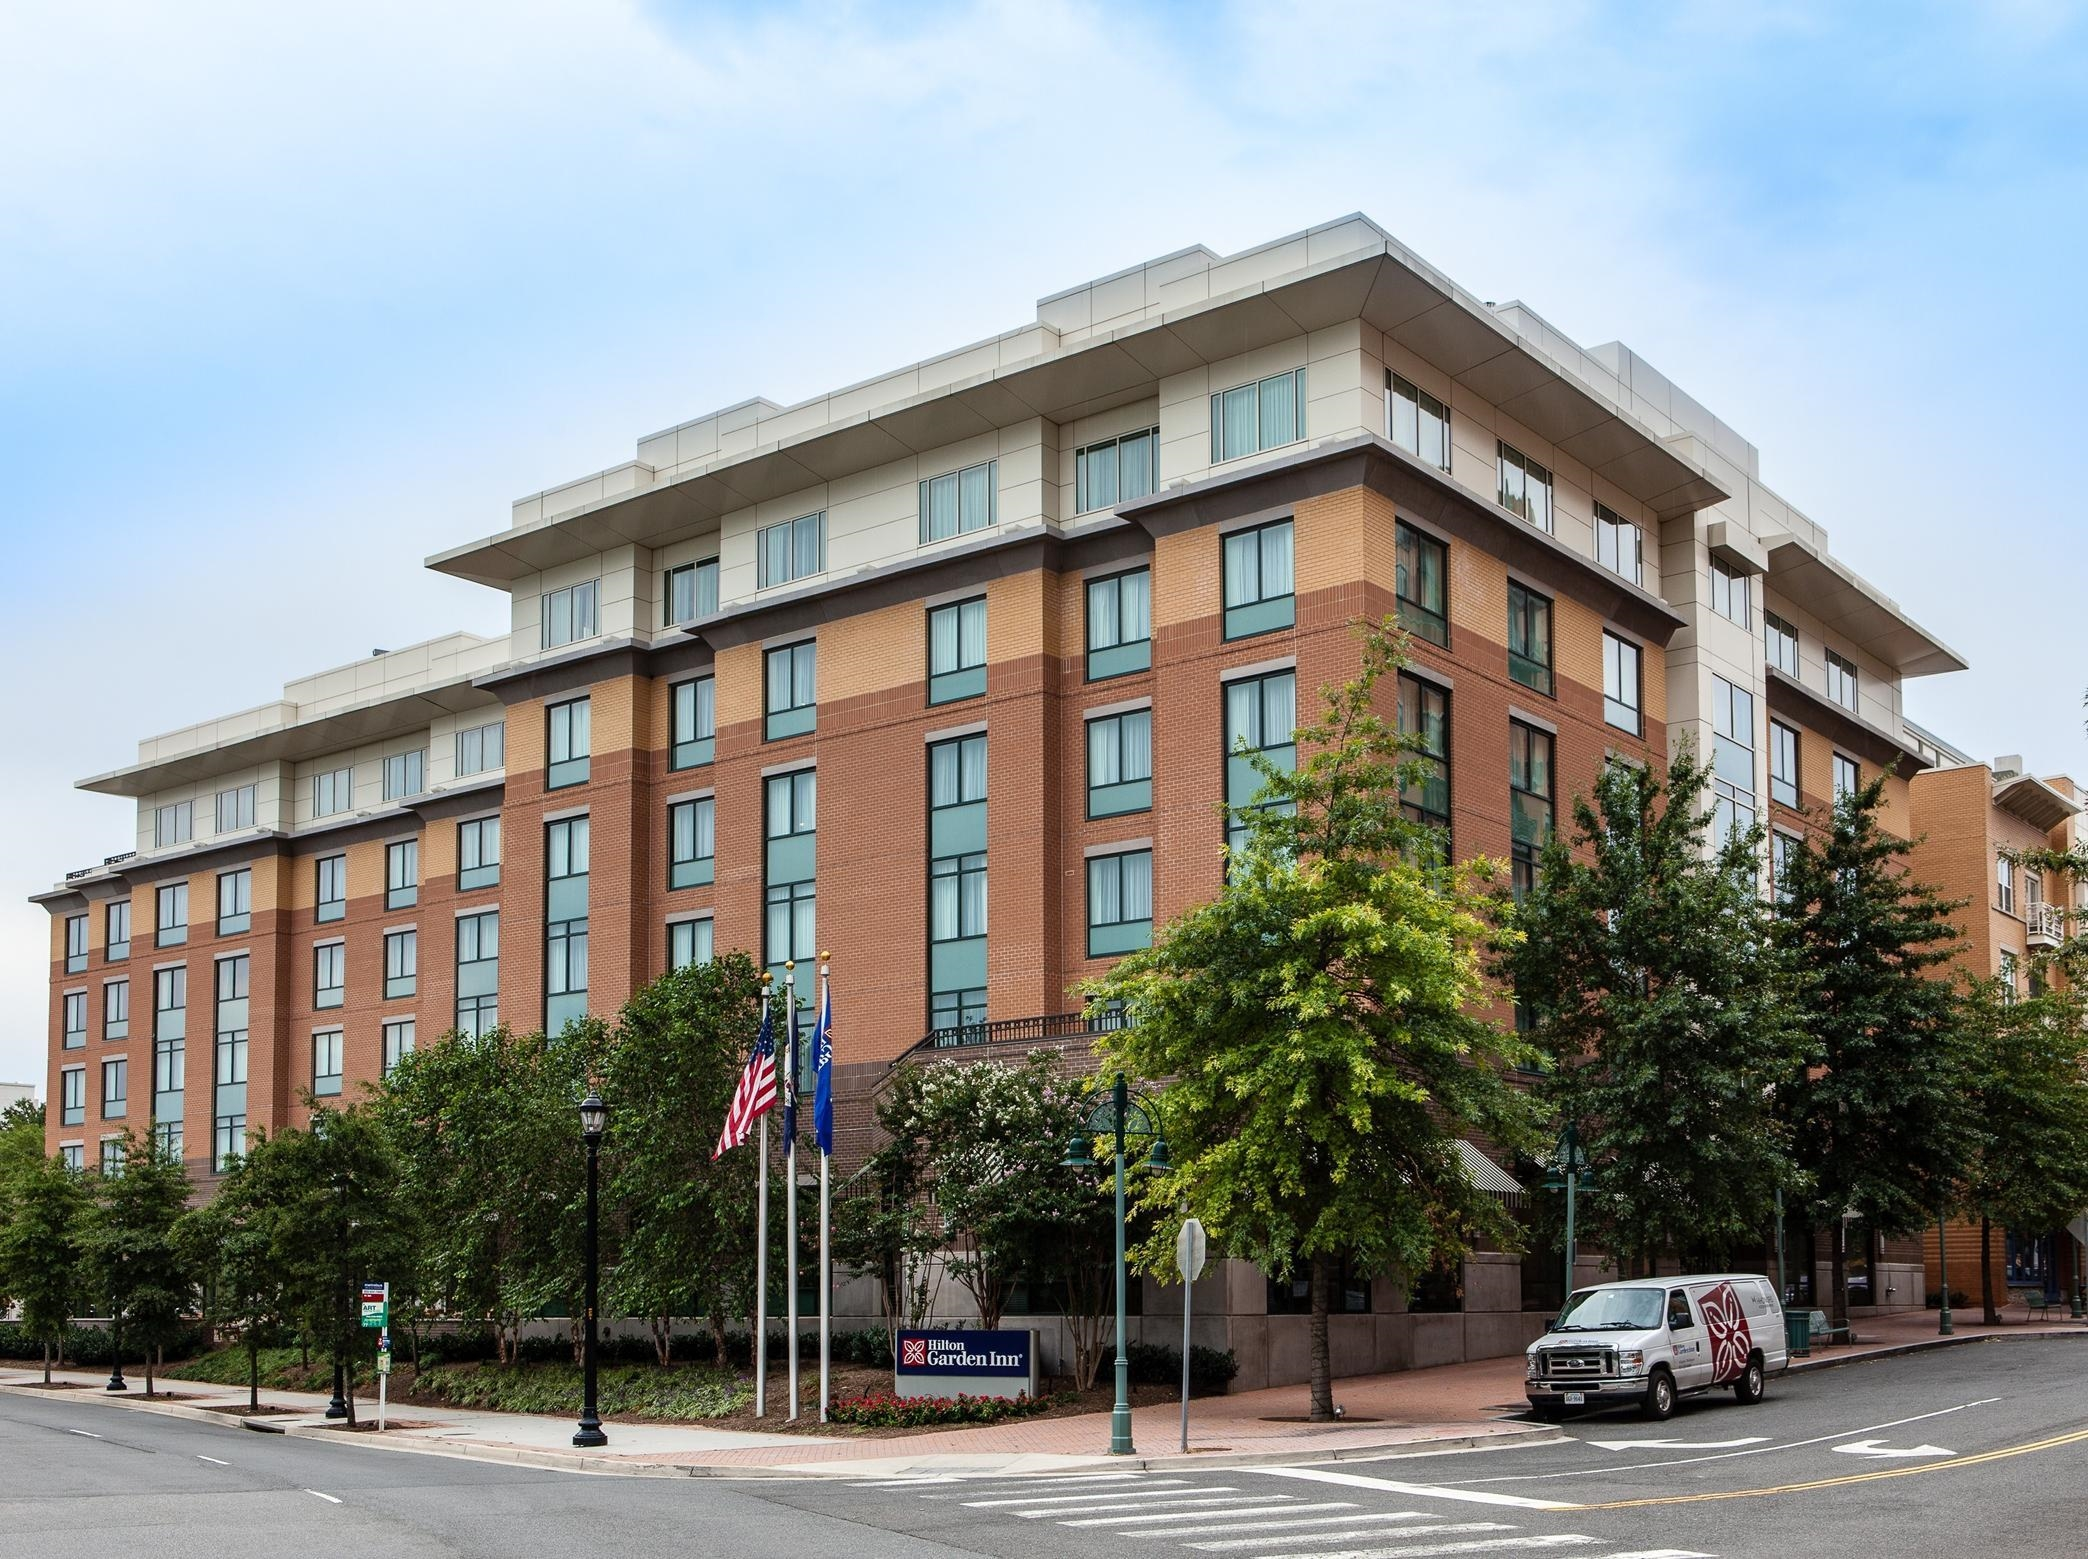 Hilton garden inn arlington shirlington arlington virginia va for Hilton garden inn crystal city va